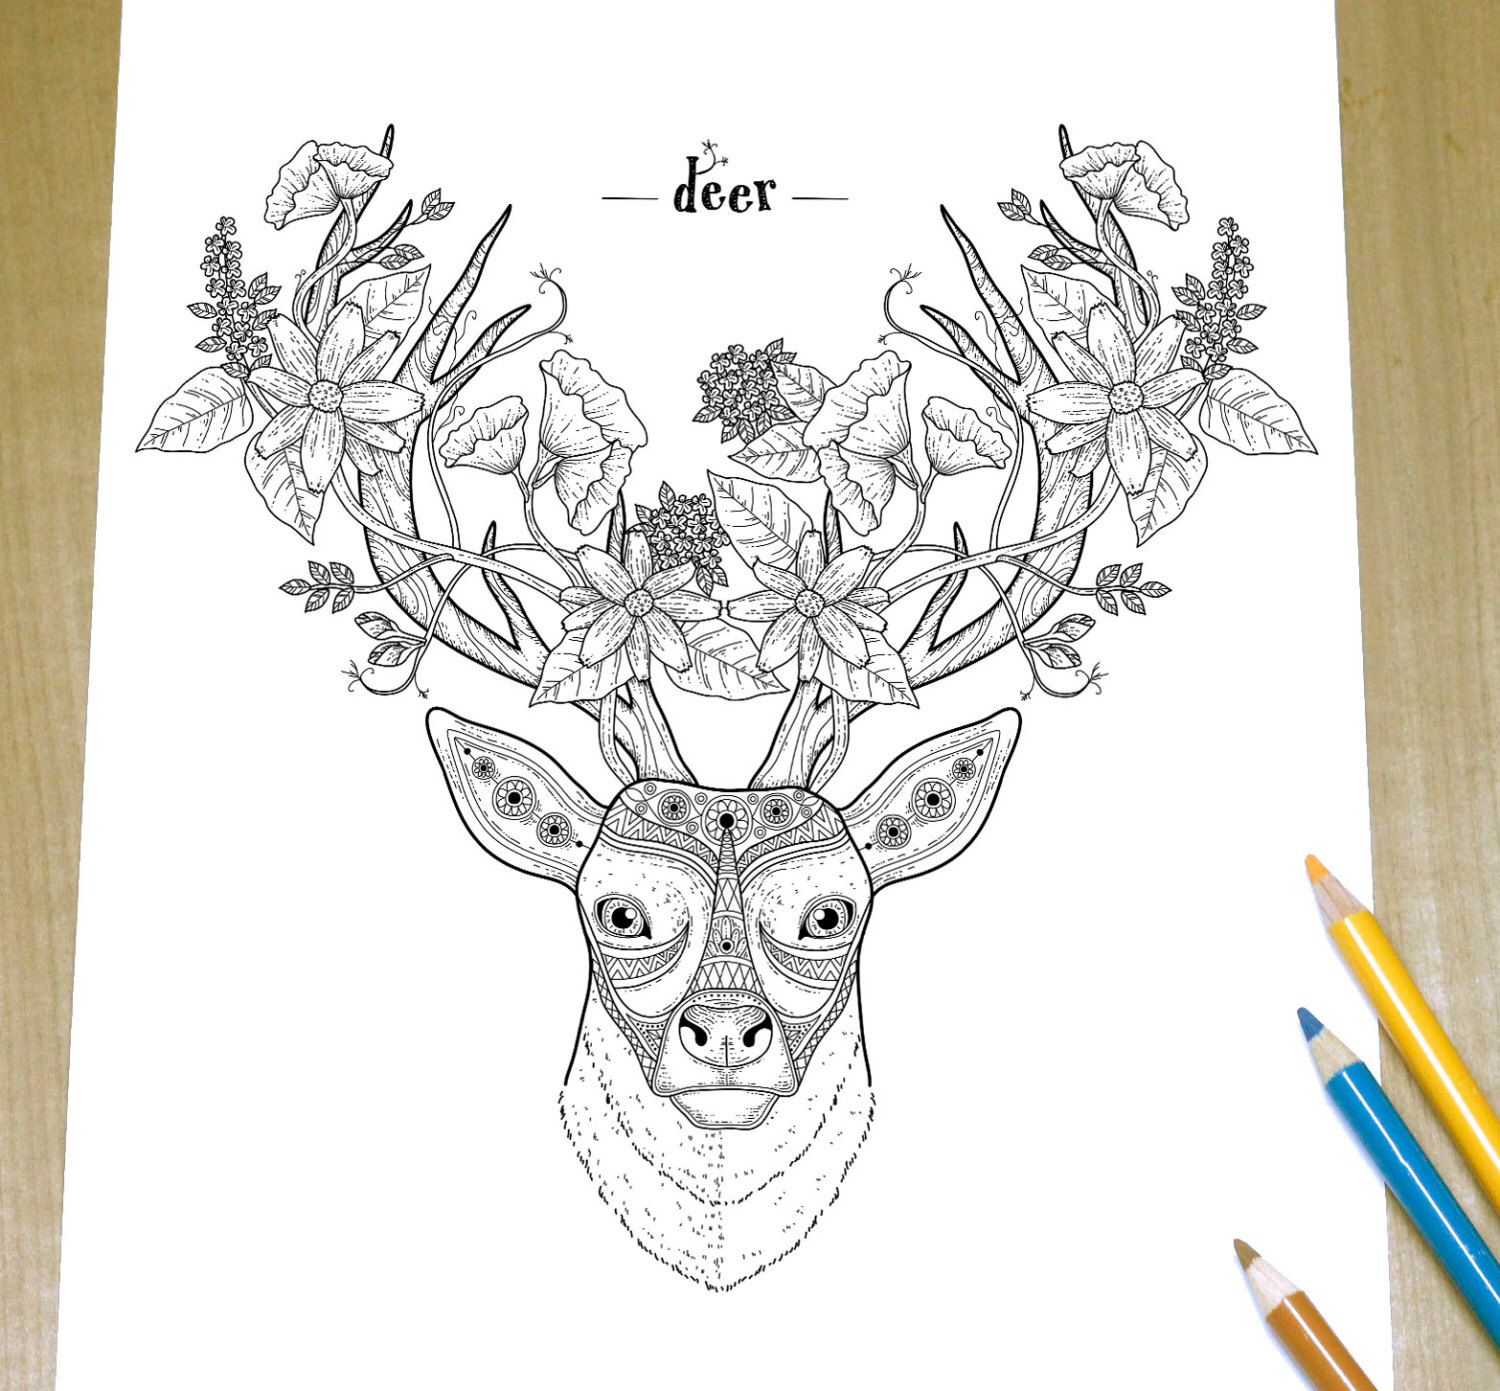 Floral Deer Adult Coloring Page Print Adult coloring Animal